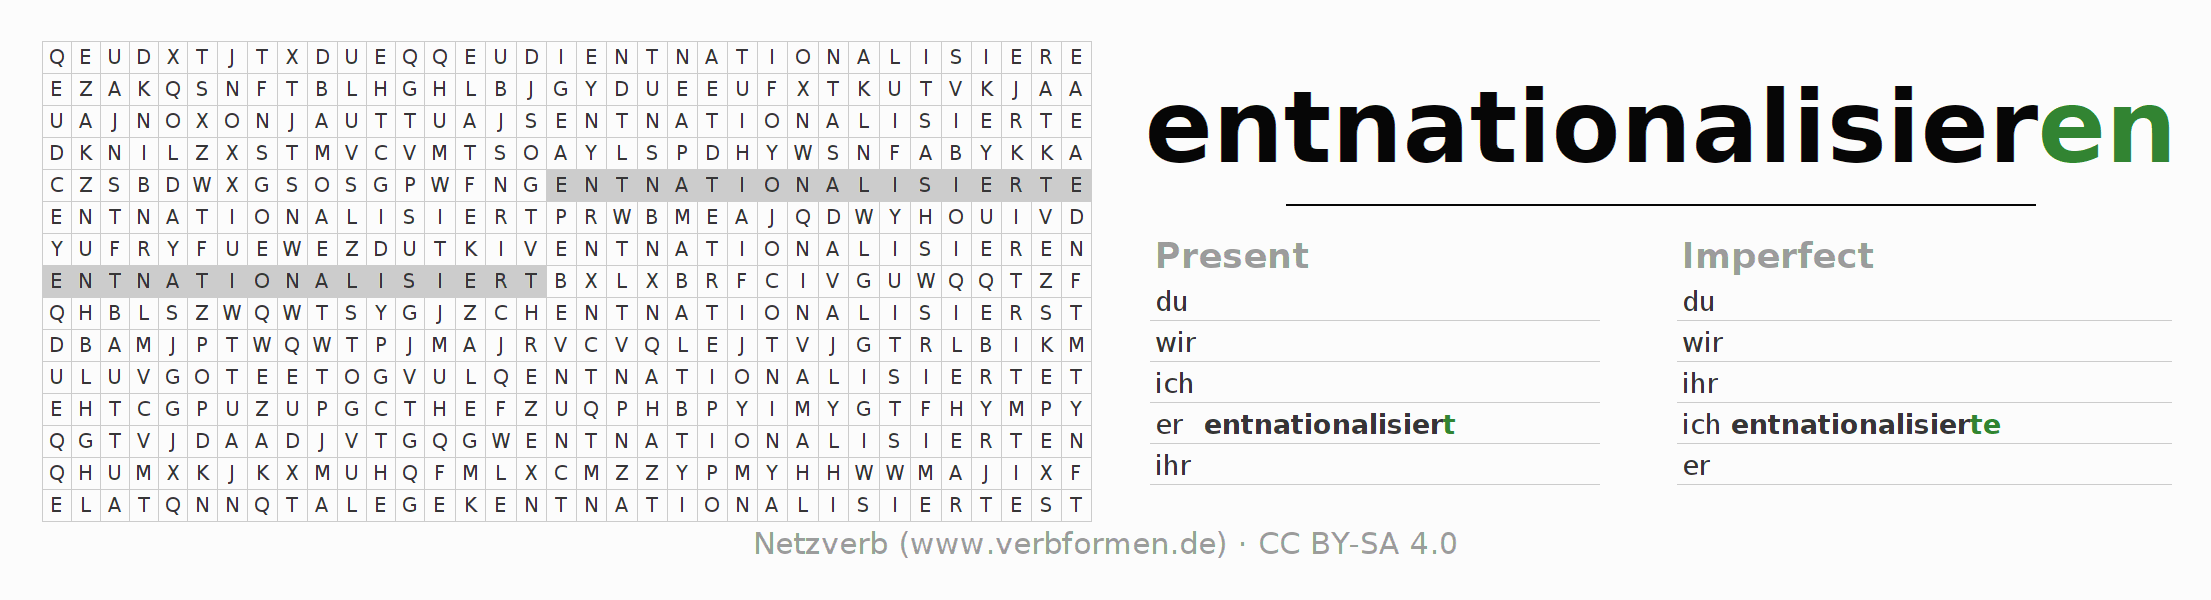 Word search puzzle for the conjugation of the verb entnationalisieren